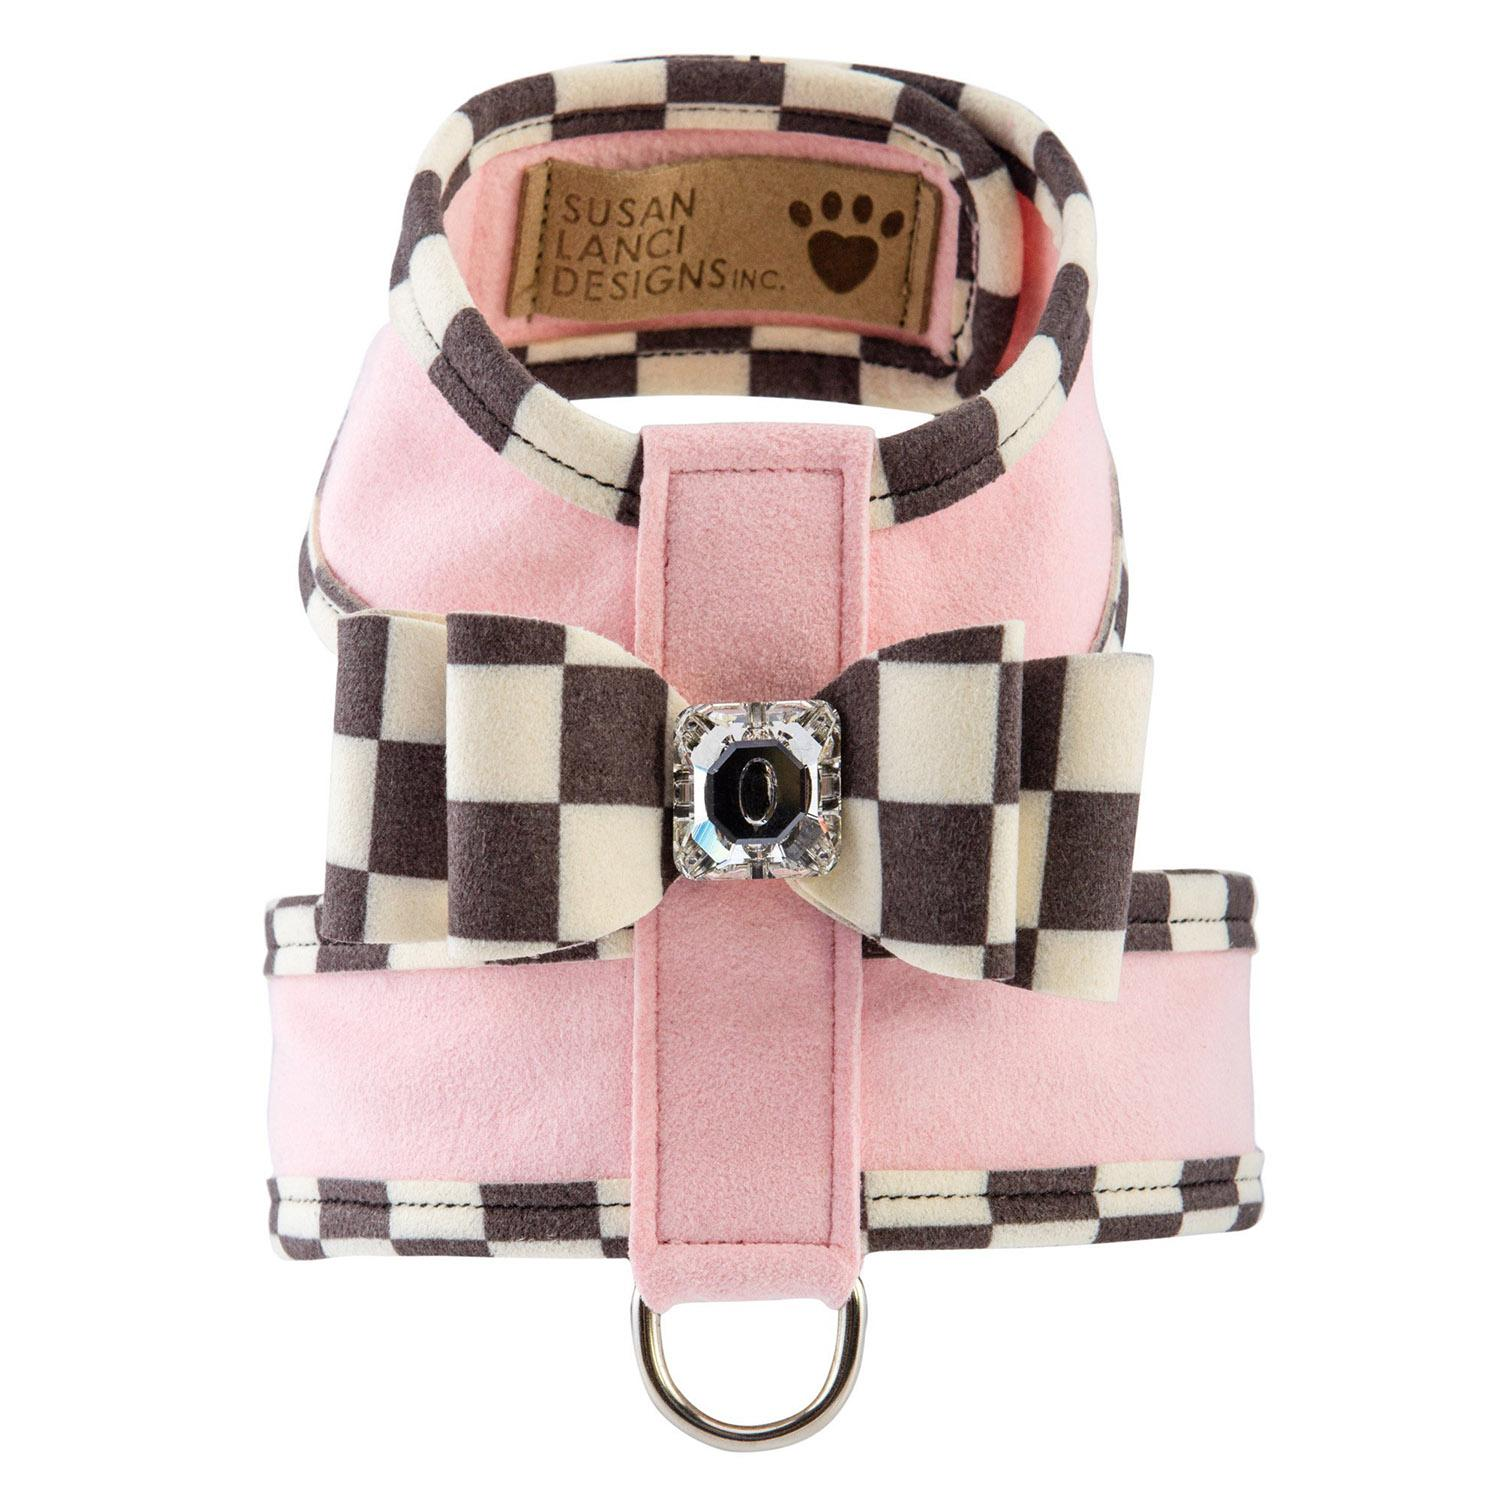 Tinkie Dog Harness with Windsor Big Bow & Trim by Susan Lanci - Puppy Pink